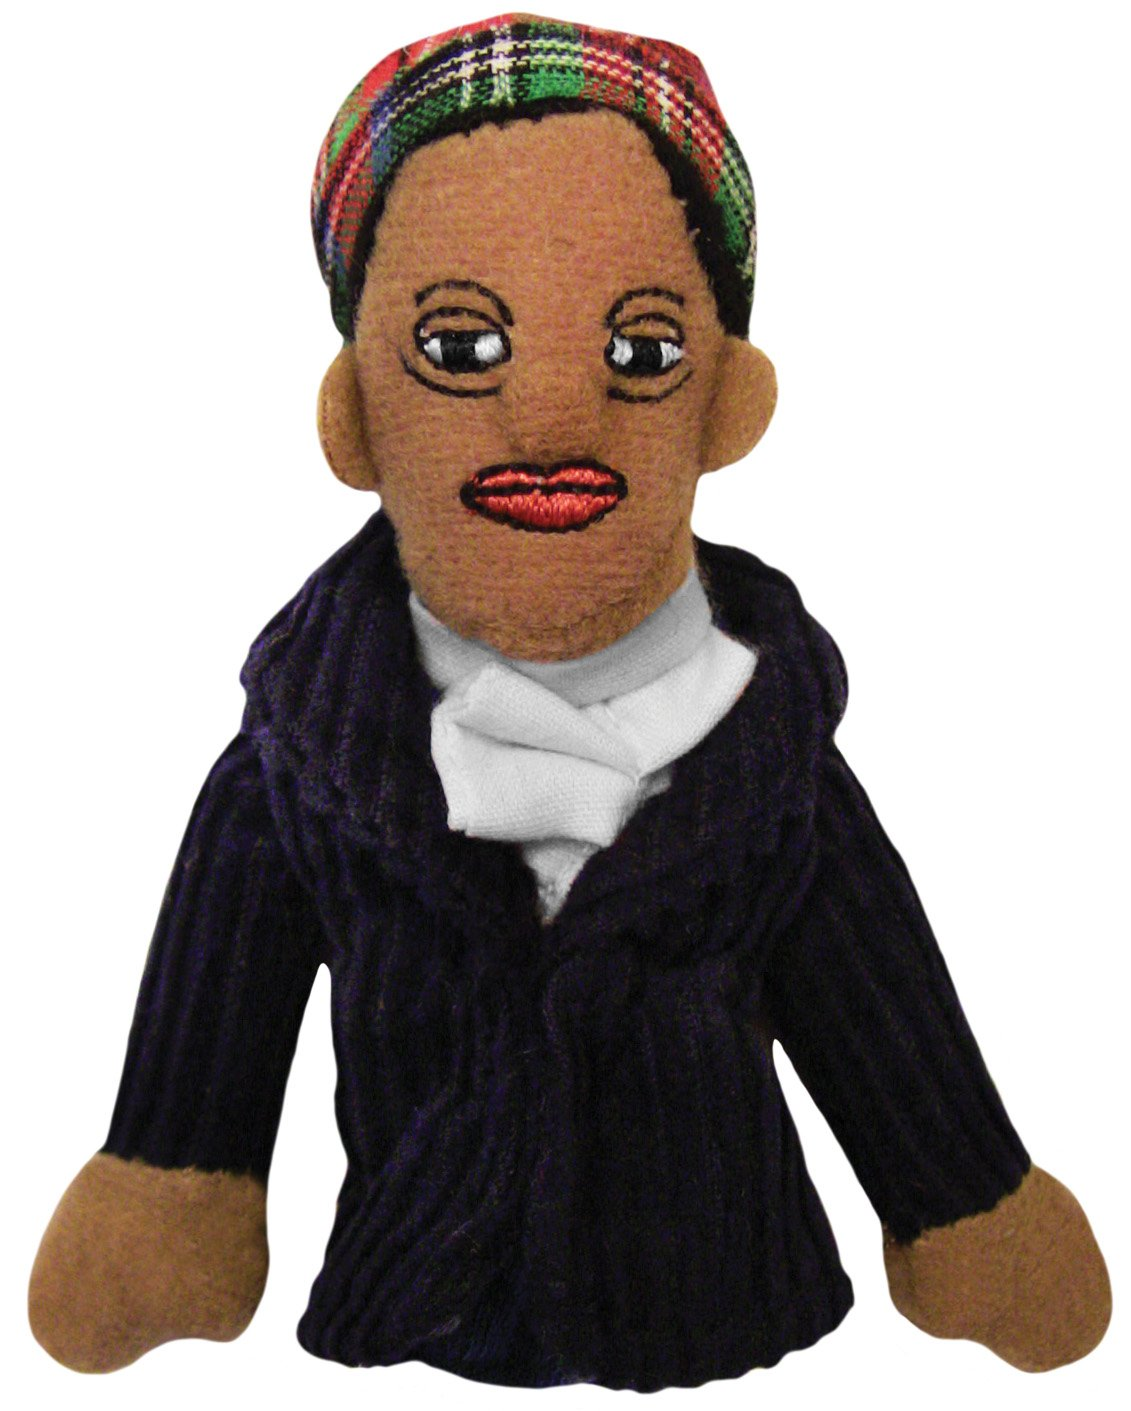 com harriet tubman finger puppet and refrigerator magnet com harriet tubman finger puppet and refrigerator magnet by the unemployed philosophers guild toys games